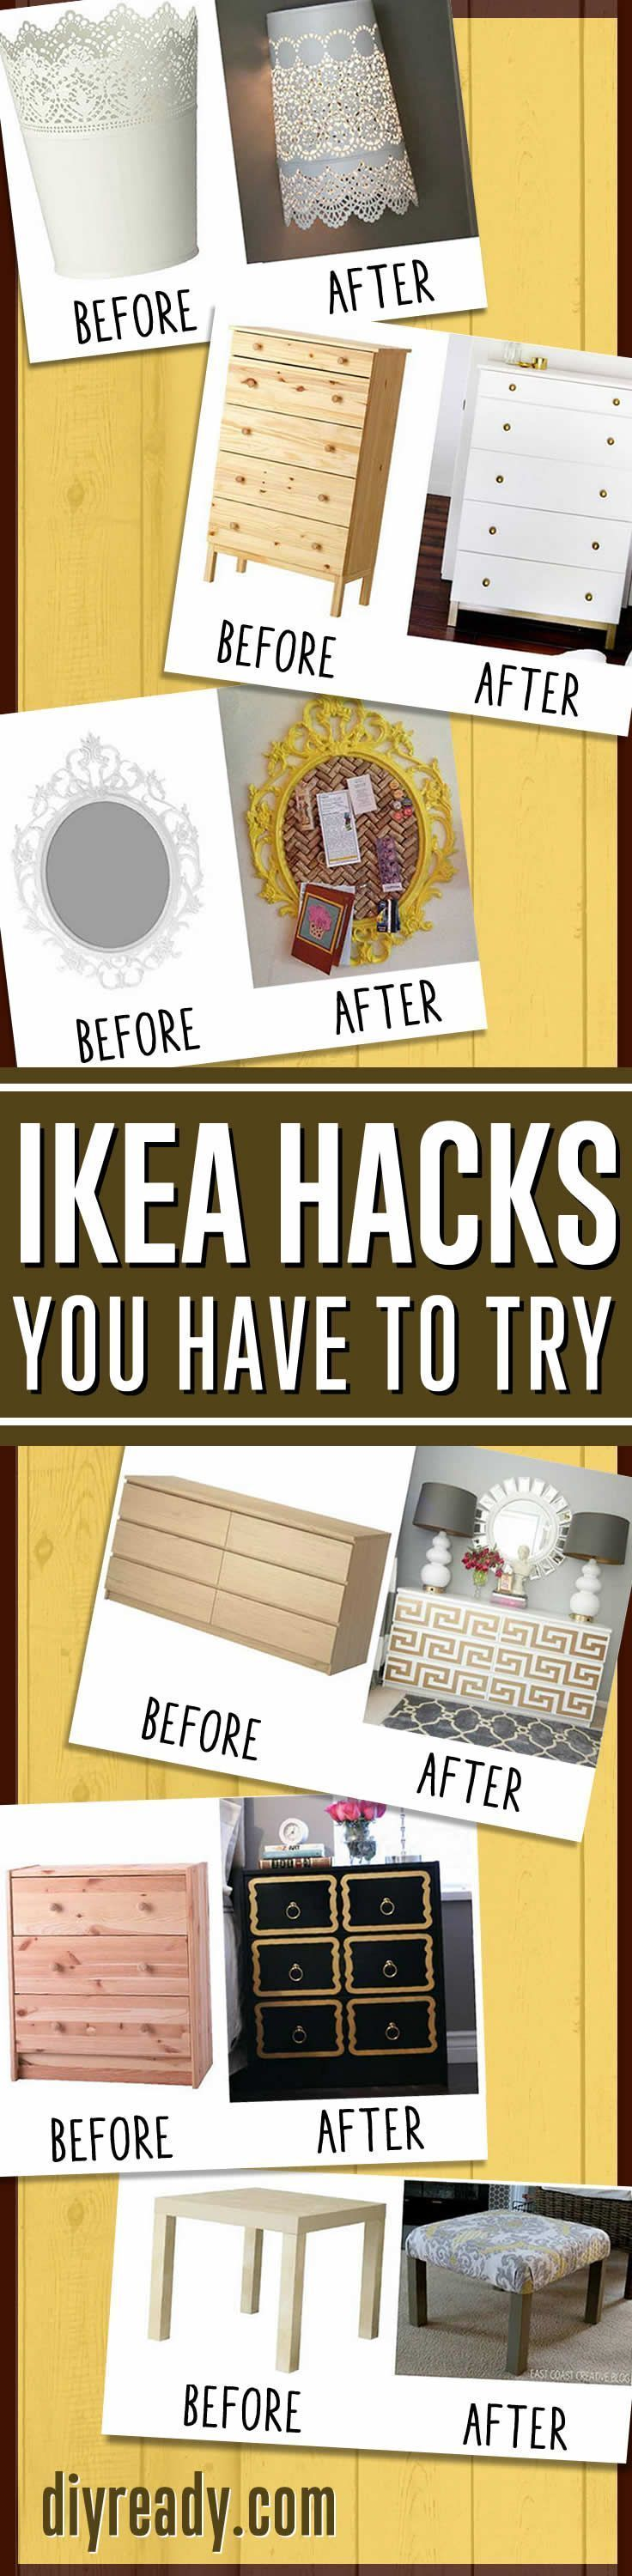 Wunderbar 18 Amazing IKEA Hacks For Chic And Functional Pieces